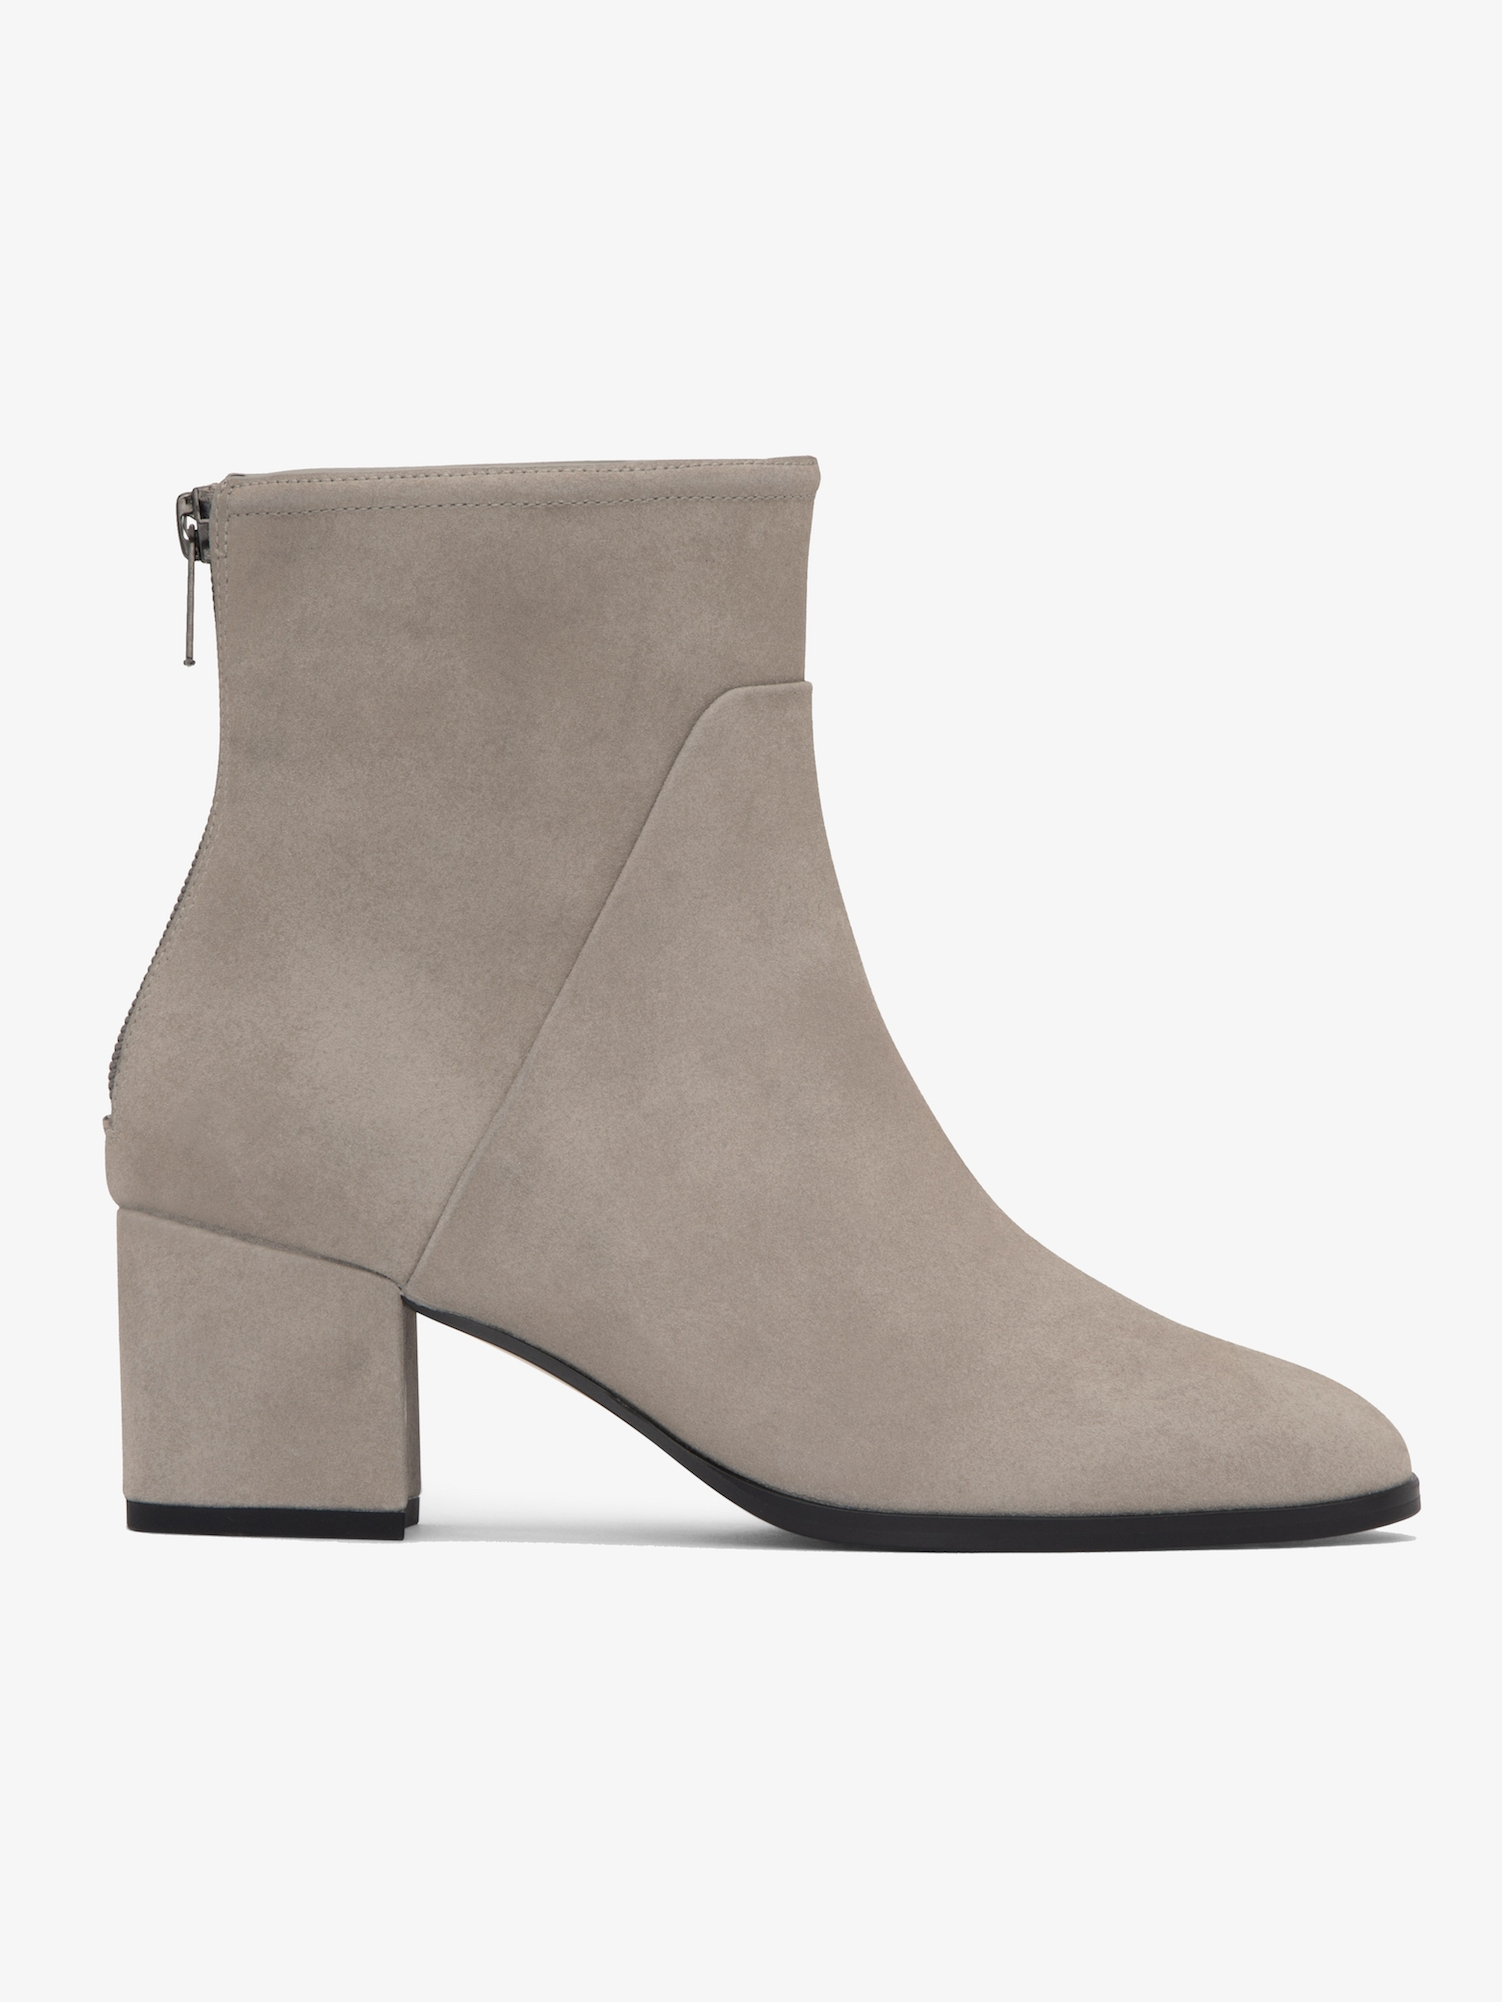 Vegan Boots For Fall - Matt & Nat